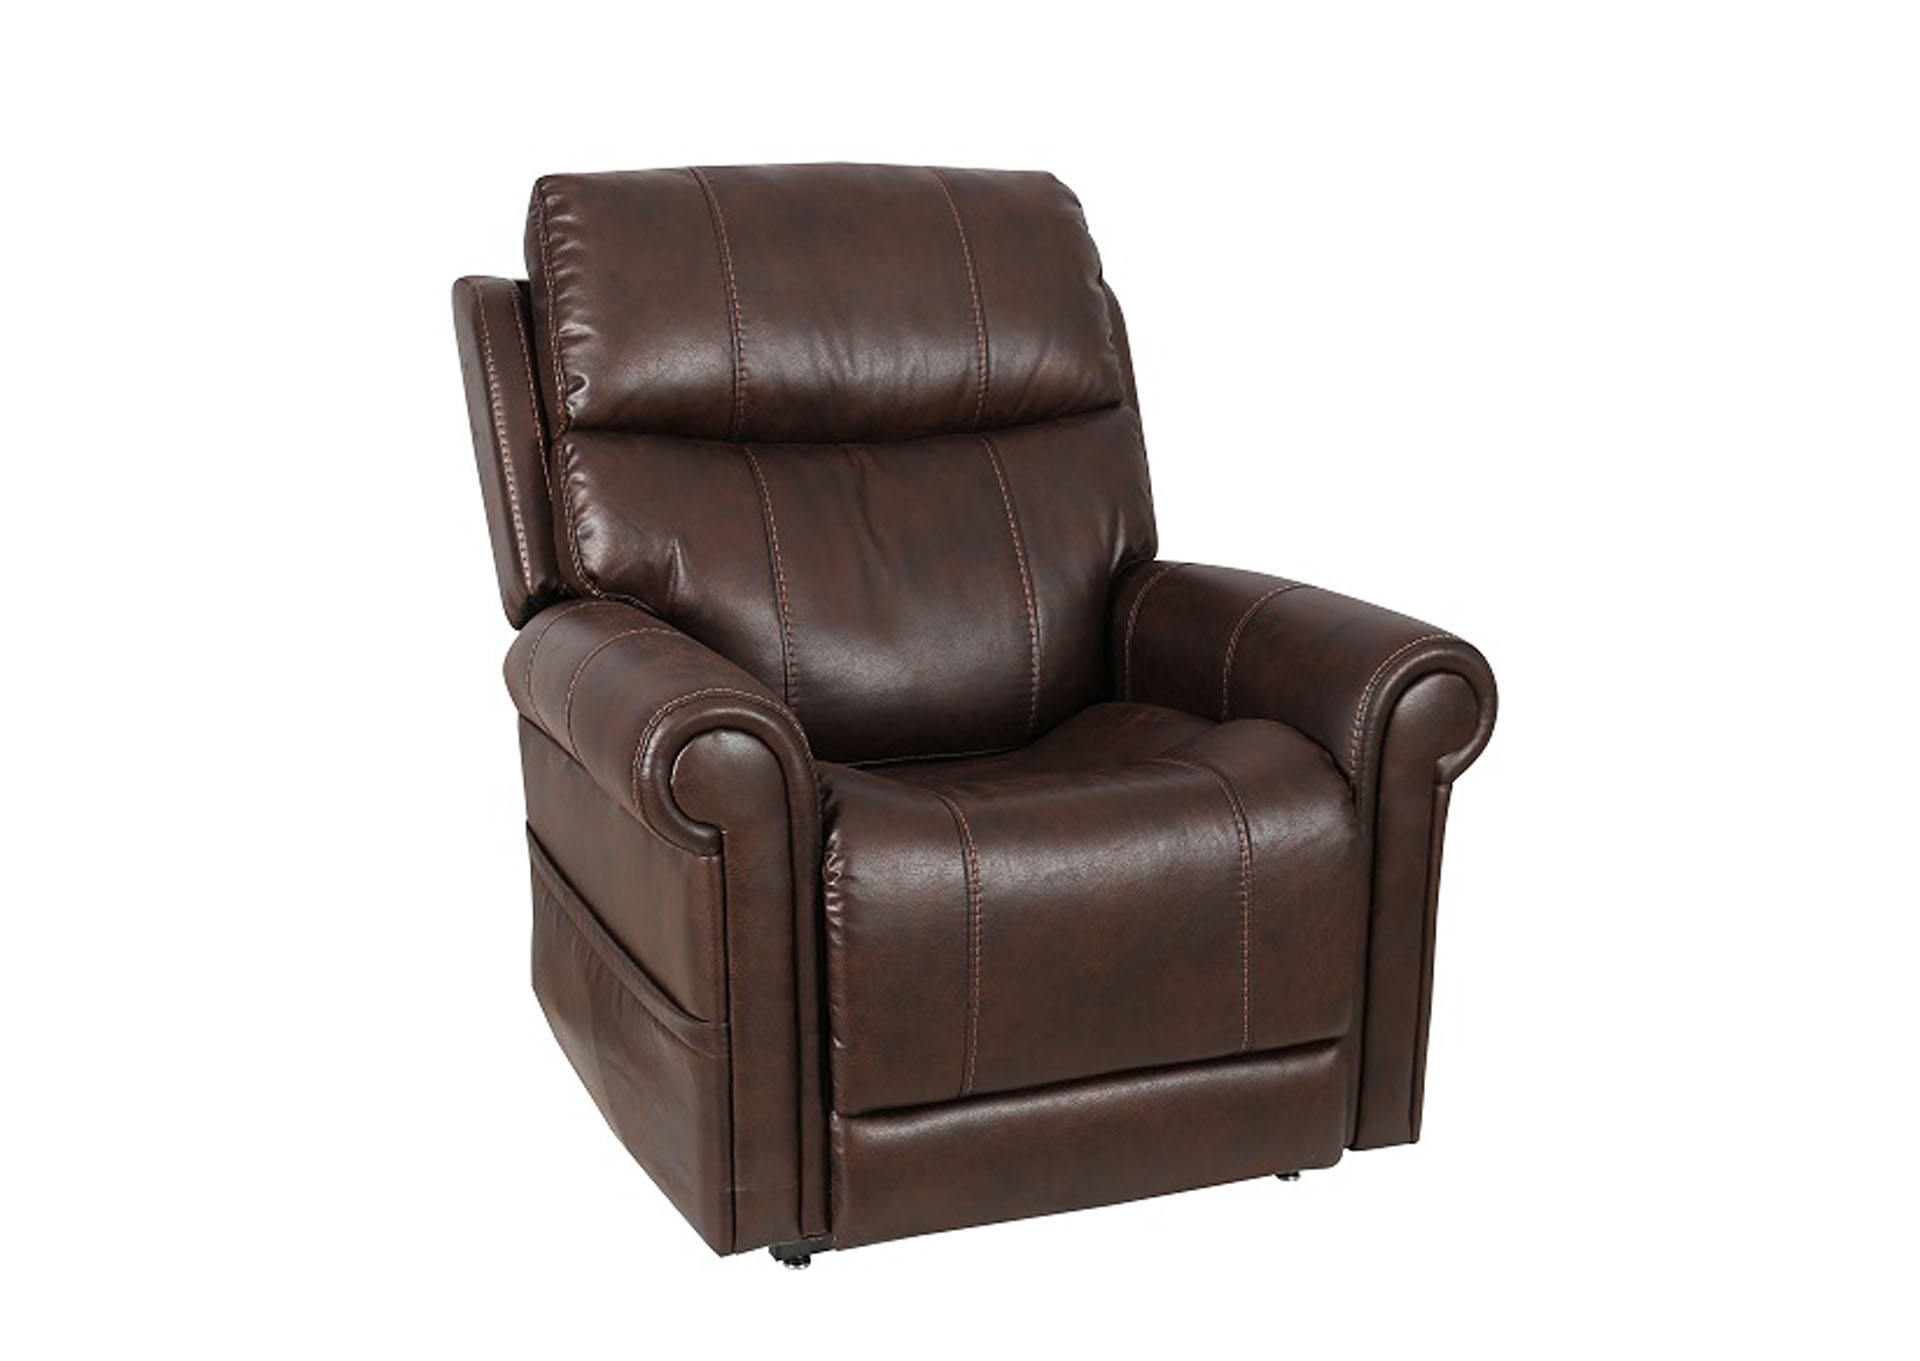 210 Double Power Lift Recliner by WMAS,Old Brick